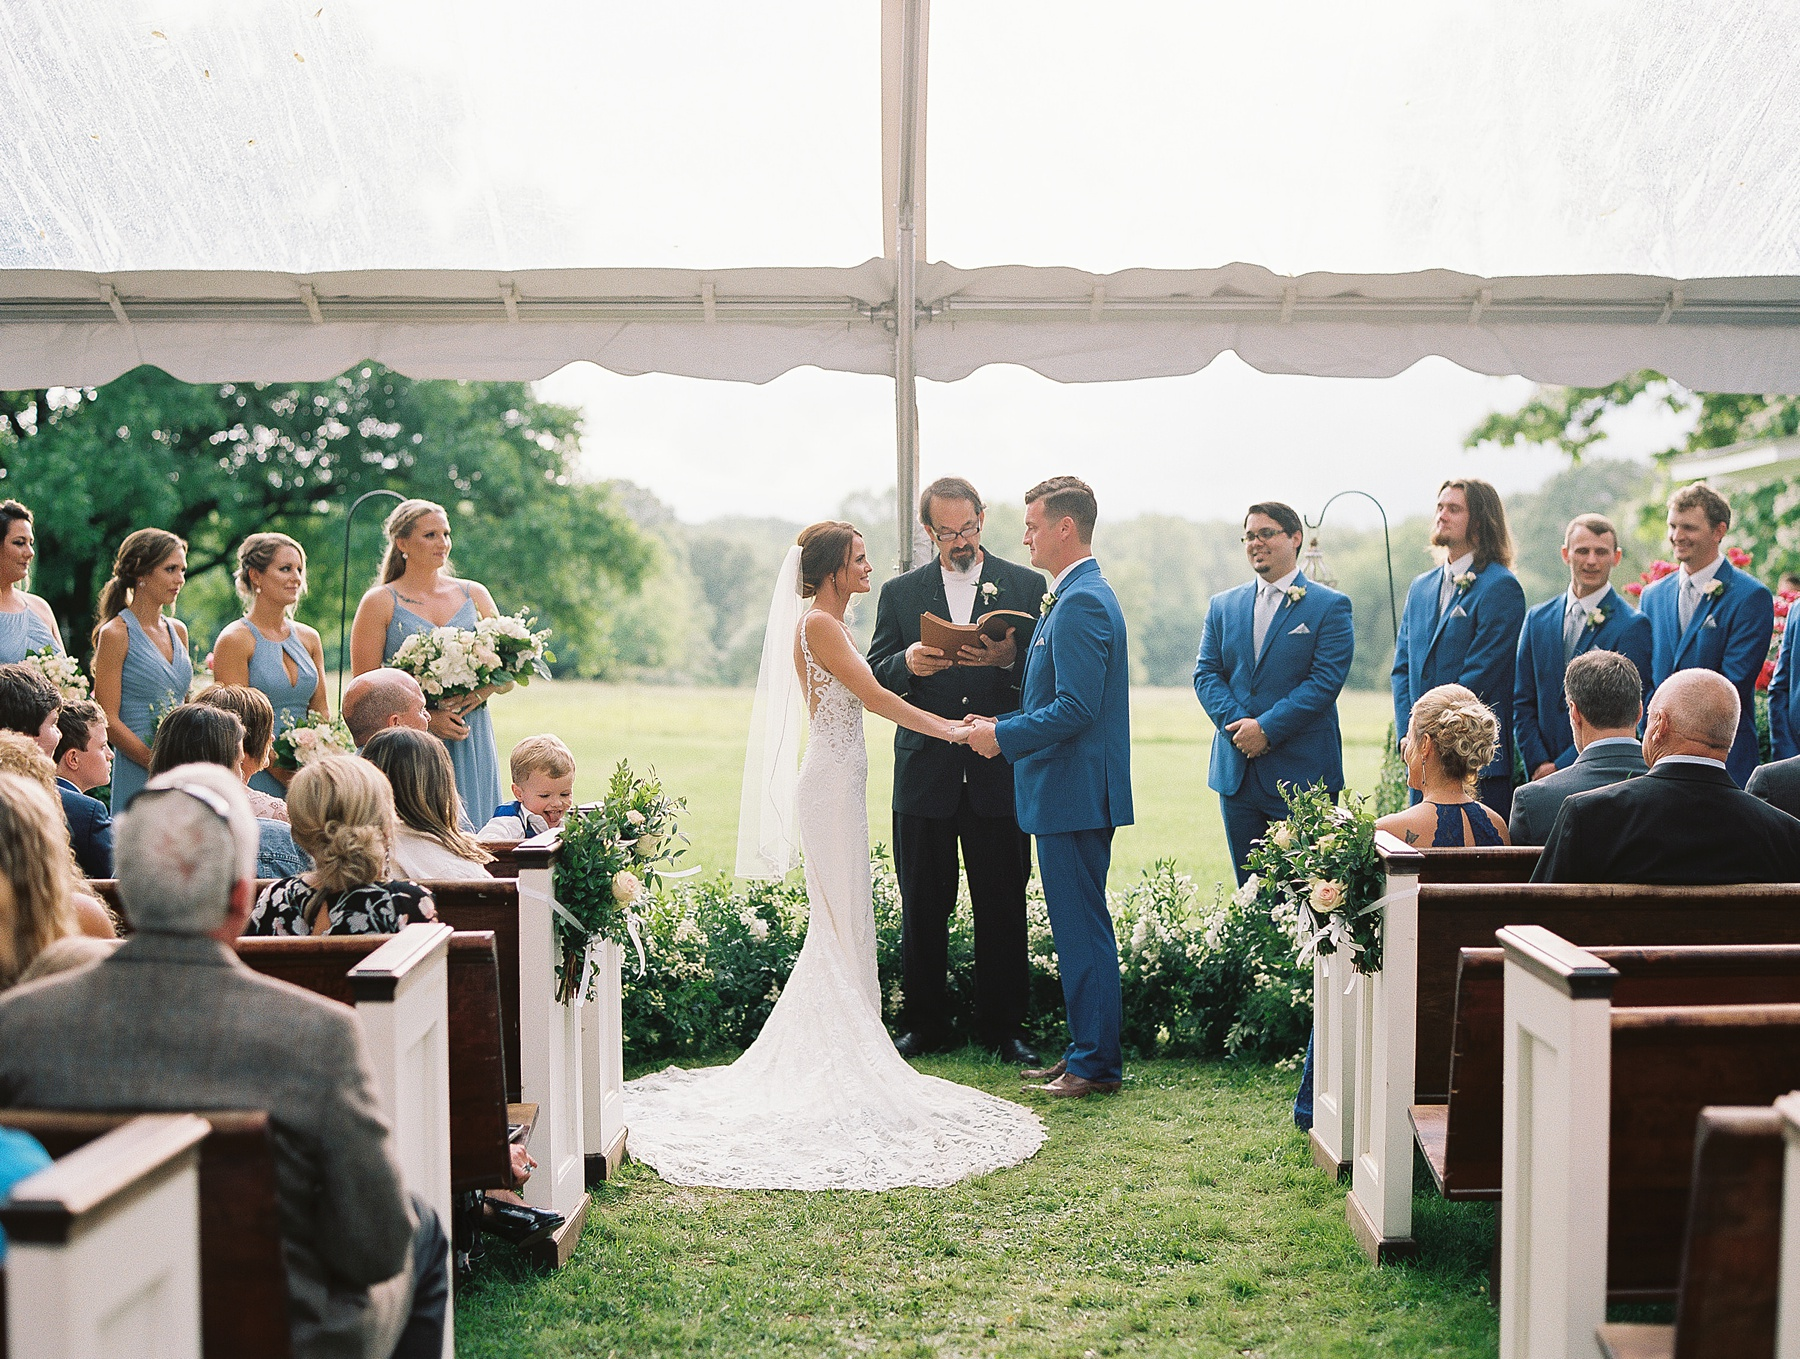 Hedge Farm Weddings Tennessee Wedding Photographer_0601.jpg